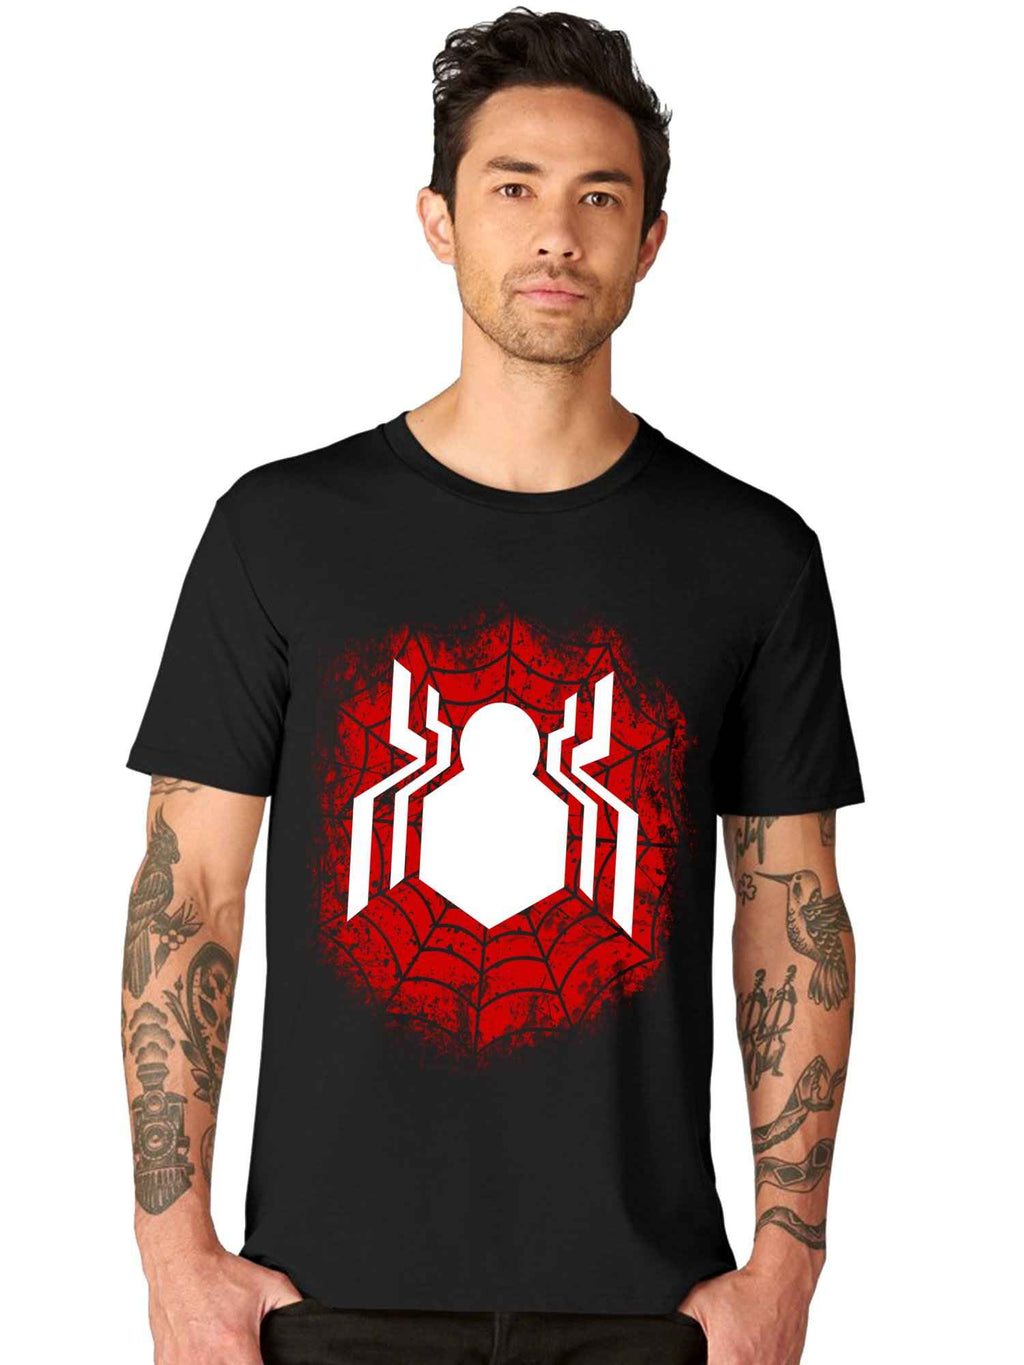 GID Far From Home Half Tshirt - bluehaat